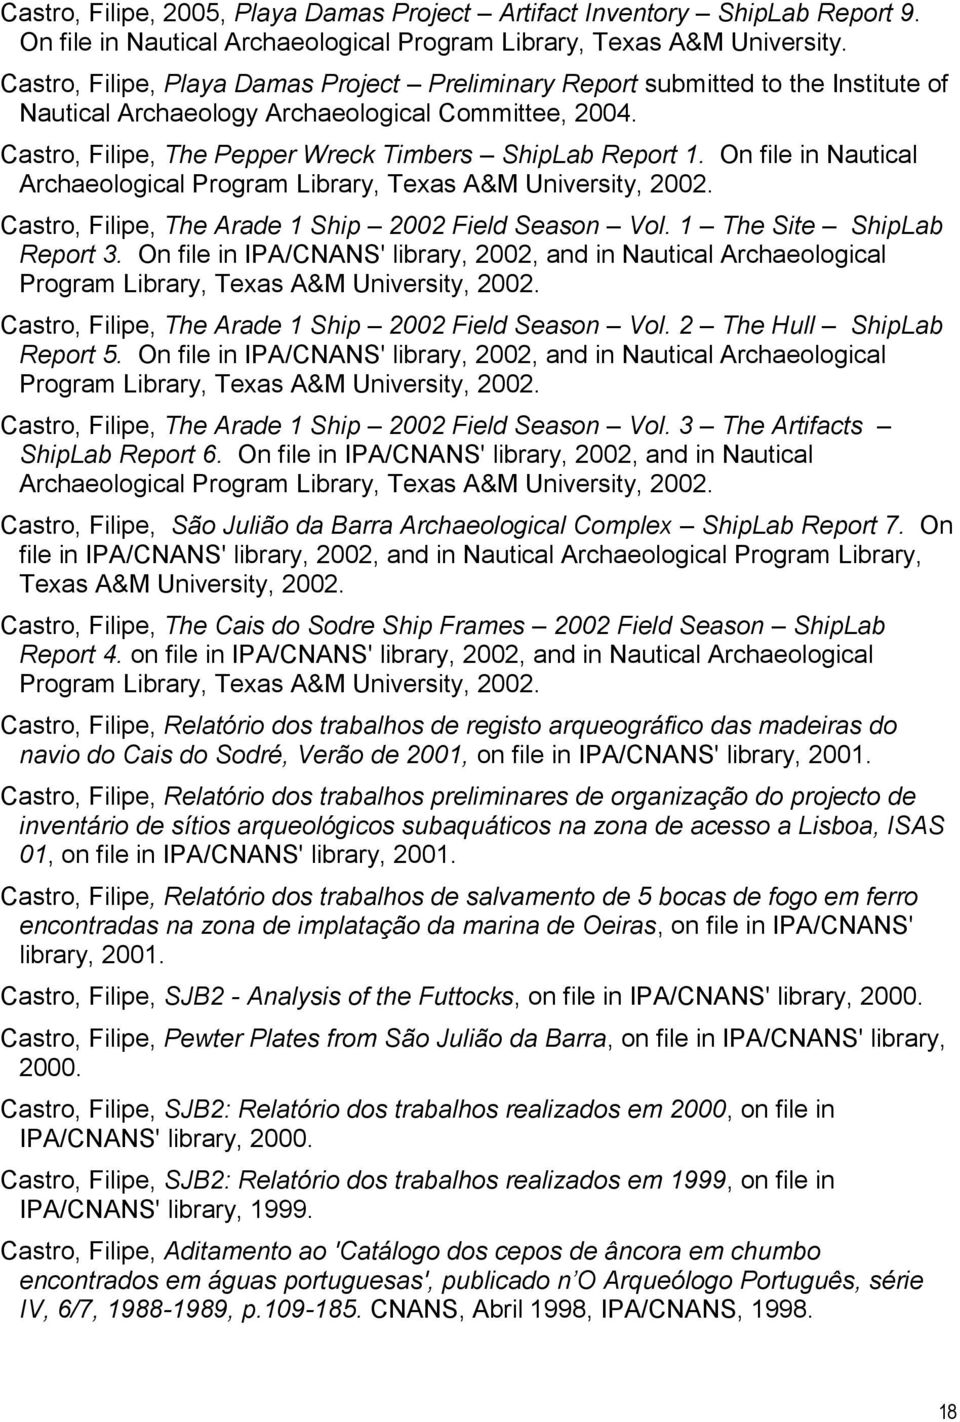 On file in Nautical Archaeological Program Library, Texas A&M University, 2002. Castro, Filipe, The Arade 1 Ship 2002 Field Season Vol. 1 The Site ShipLab Report 3.